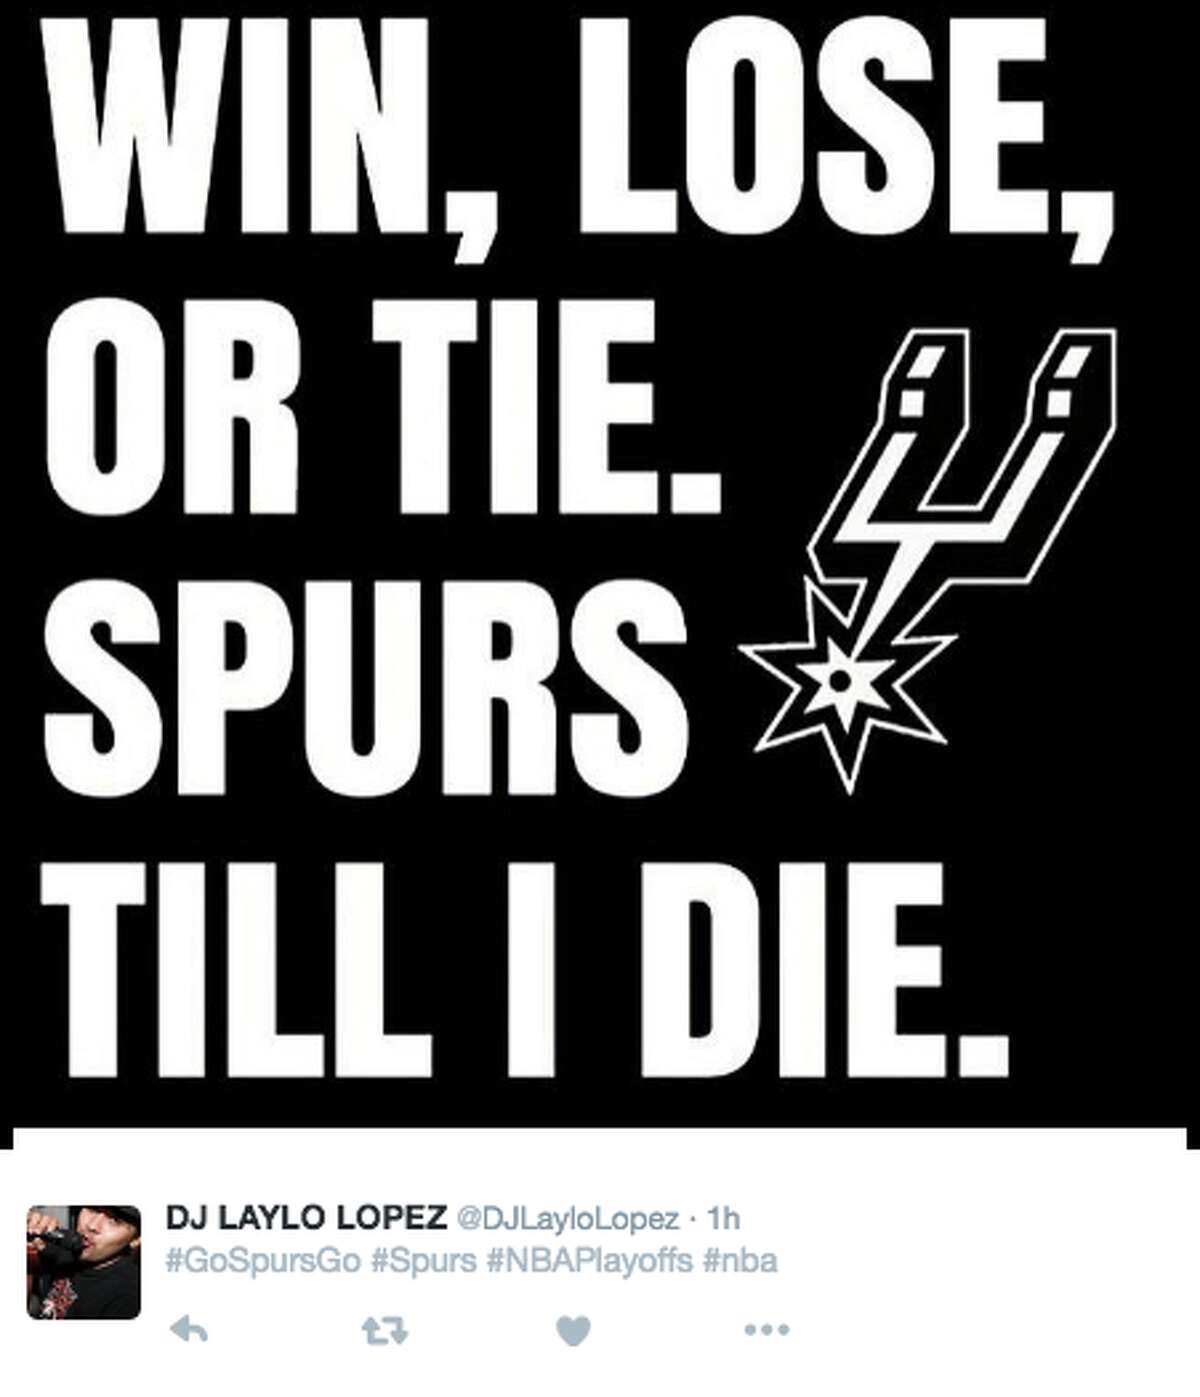 Twitter reacts to Spurs' Game 6 elimination.